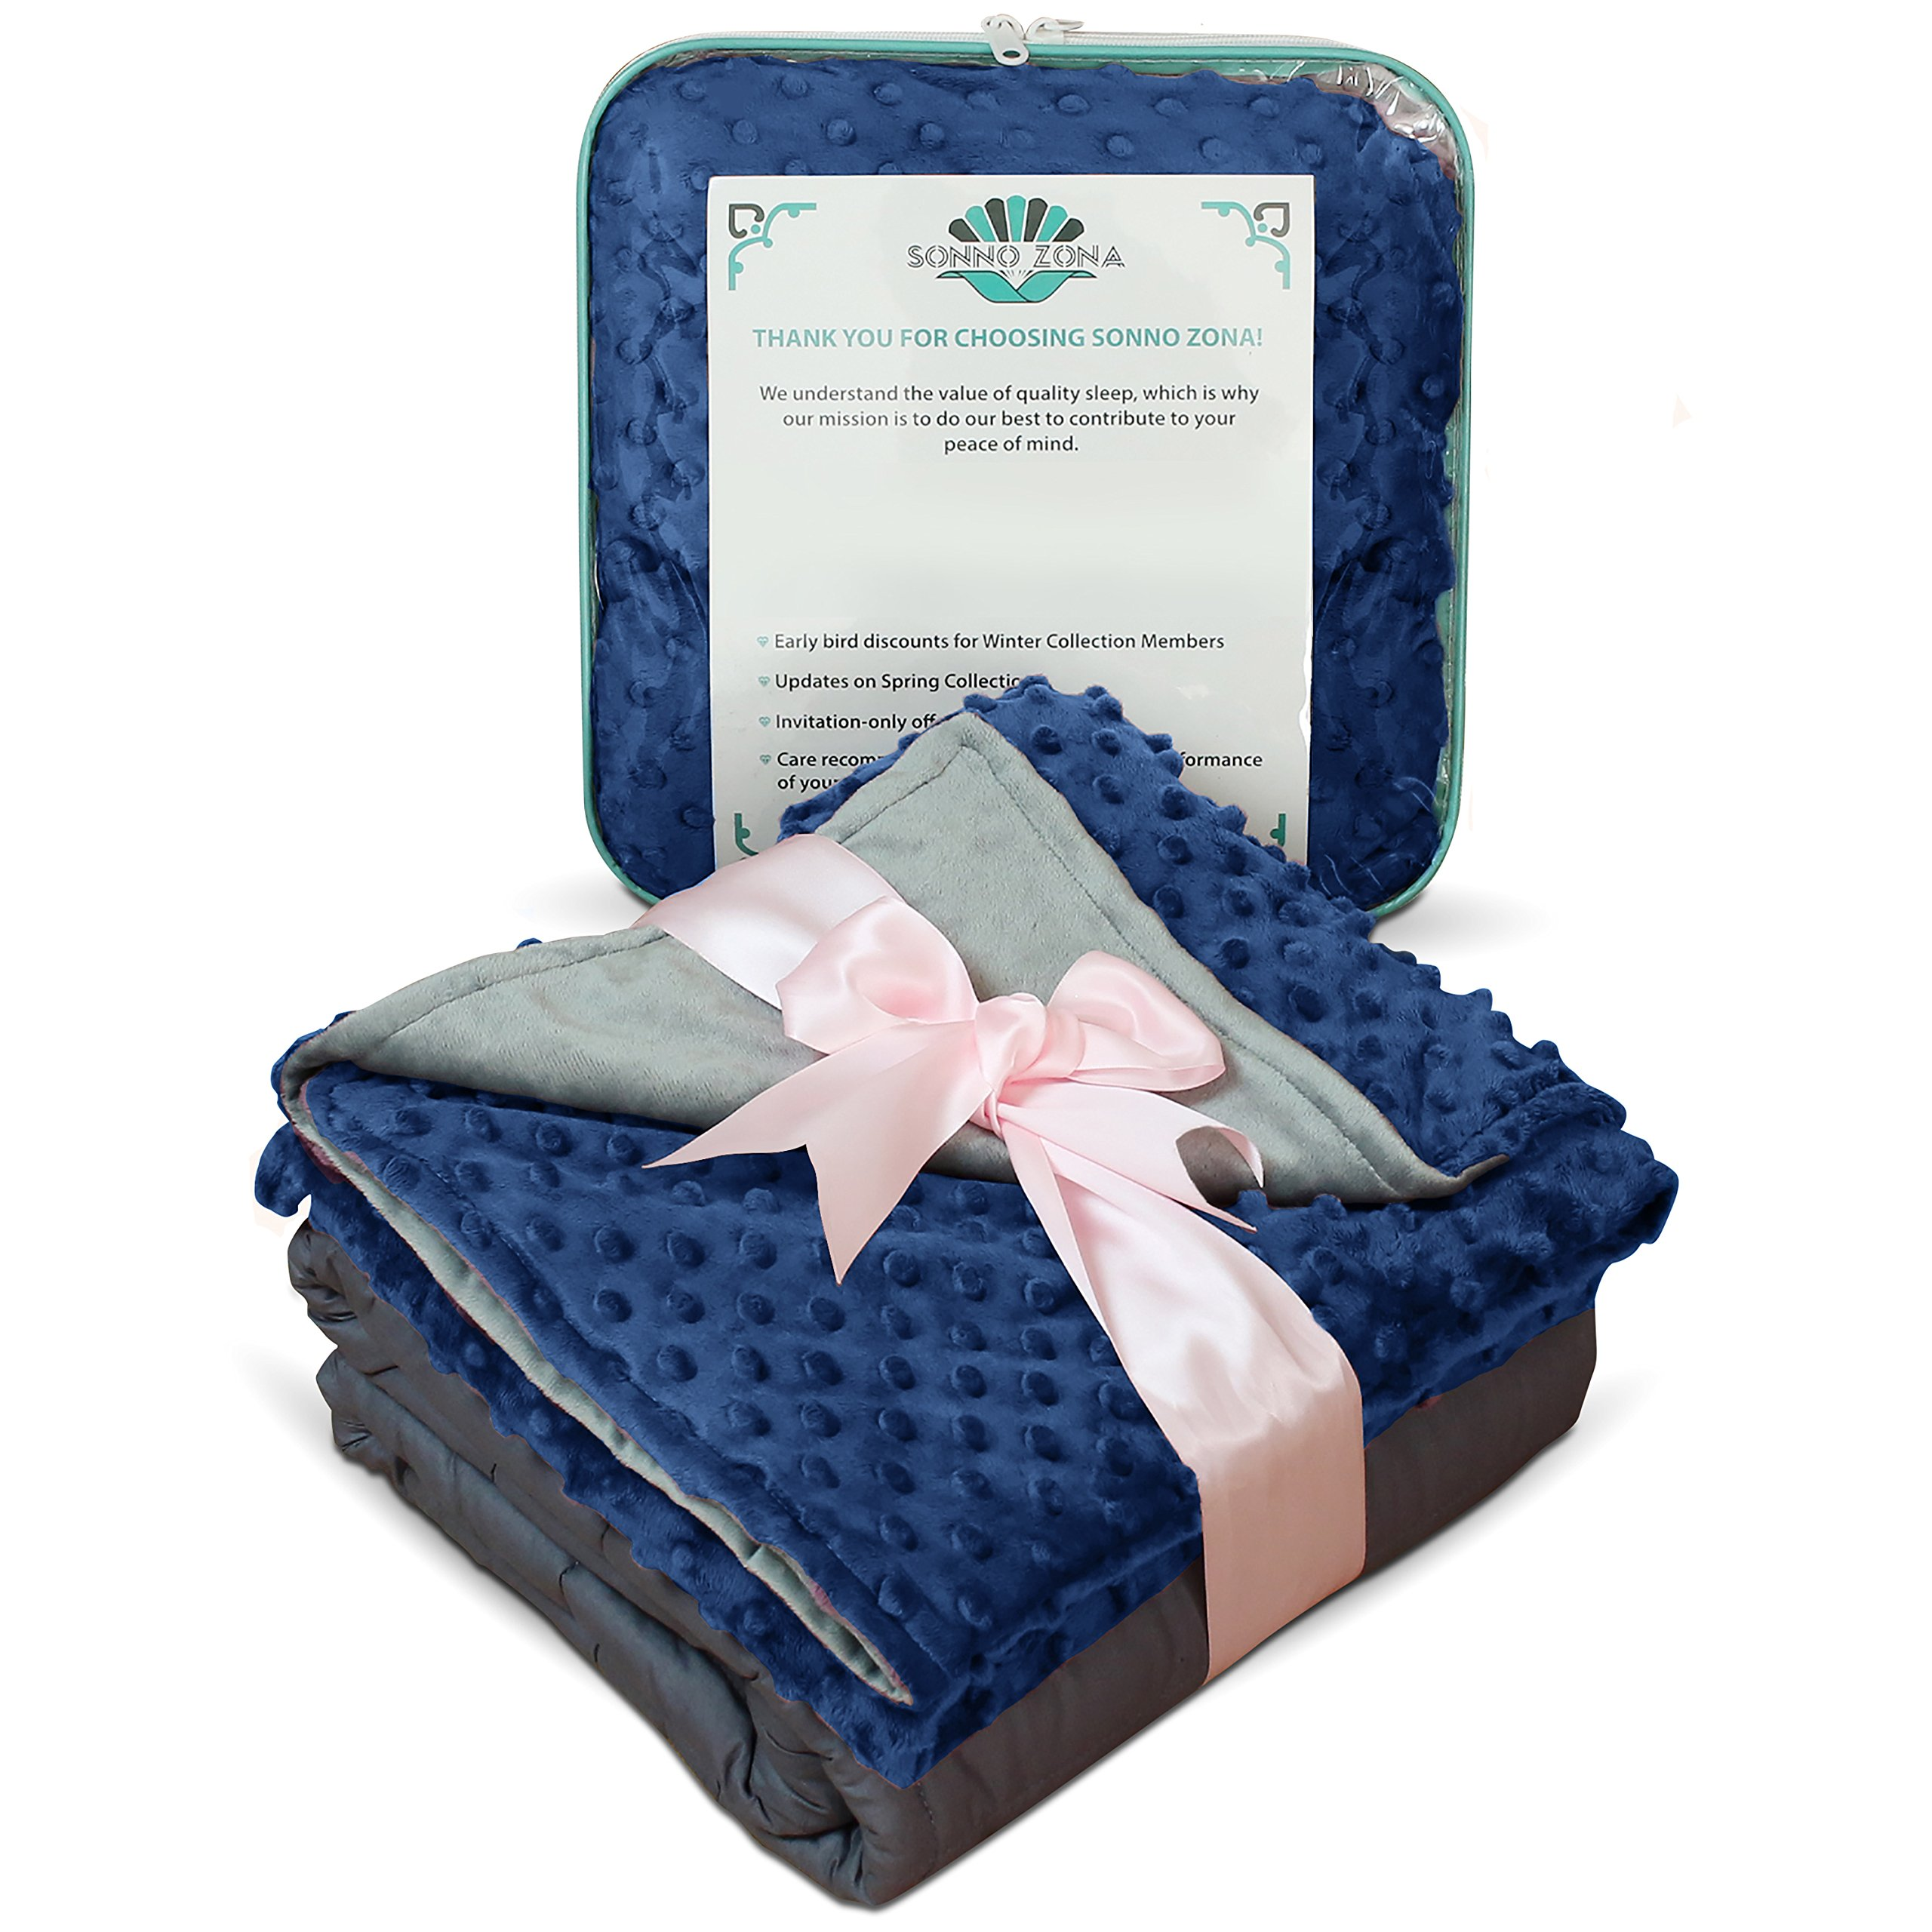 Weighted Blanket Child Size- For Heavy Stress Relief, Autism, Restless Leg Syndrome & natural calm for anxiety - Gravity Blue 36x48 5 LBS- Blankets made from our best Relaxation Sleep Fabric